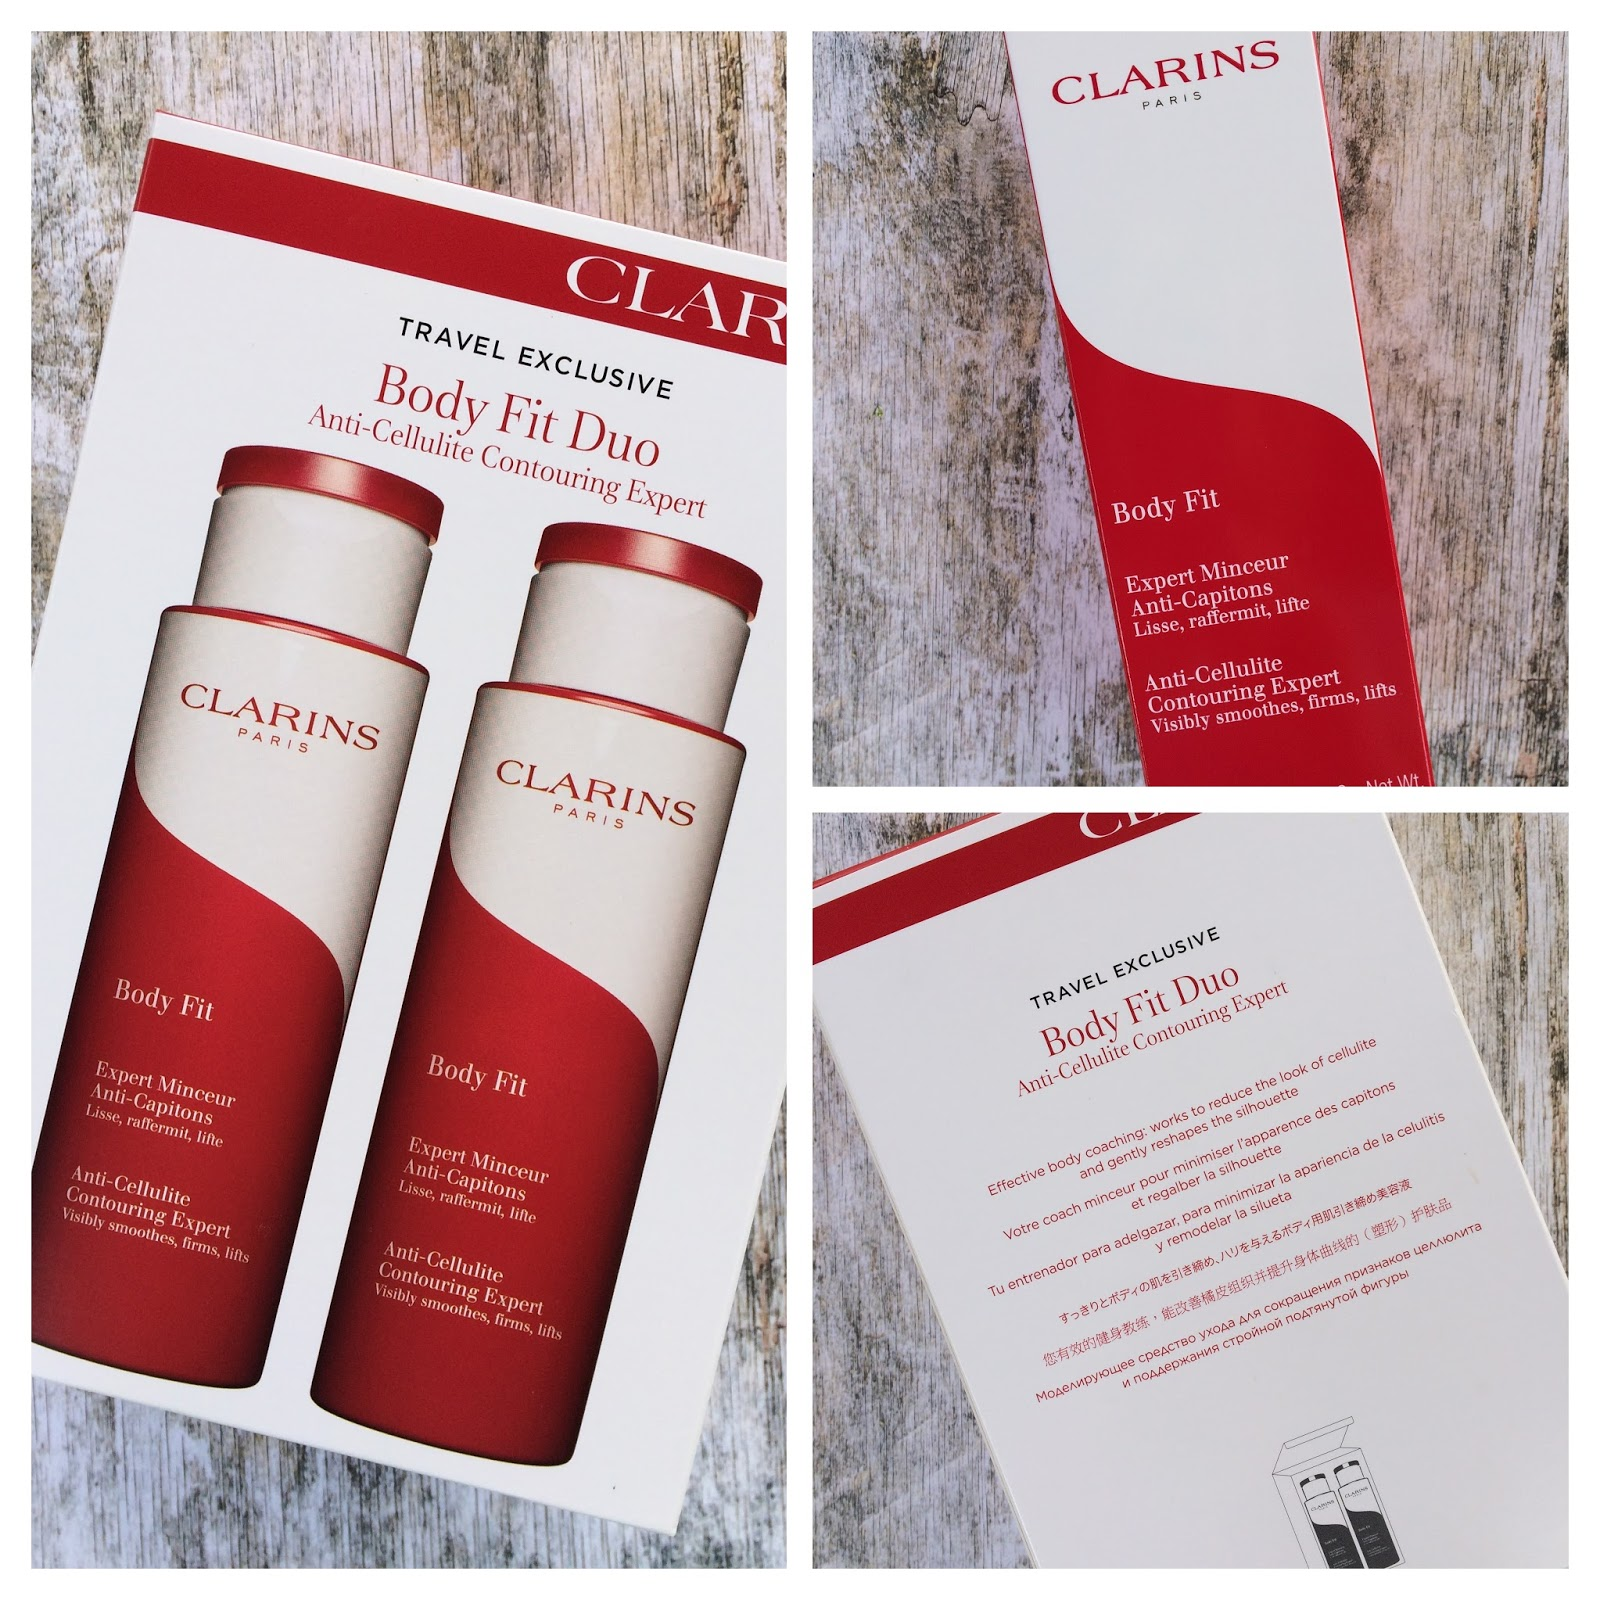 Clarins body fit travel pack